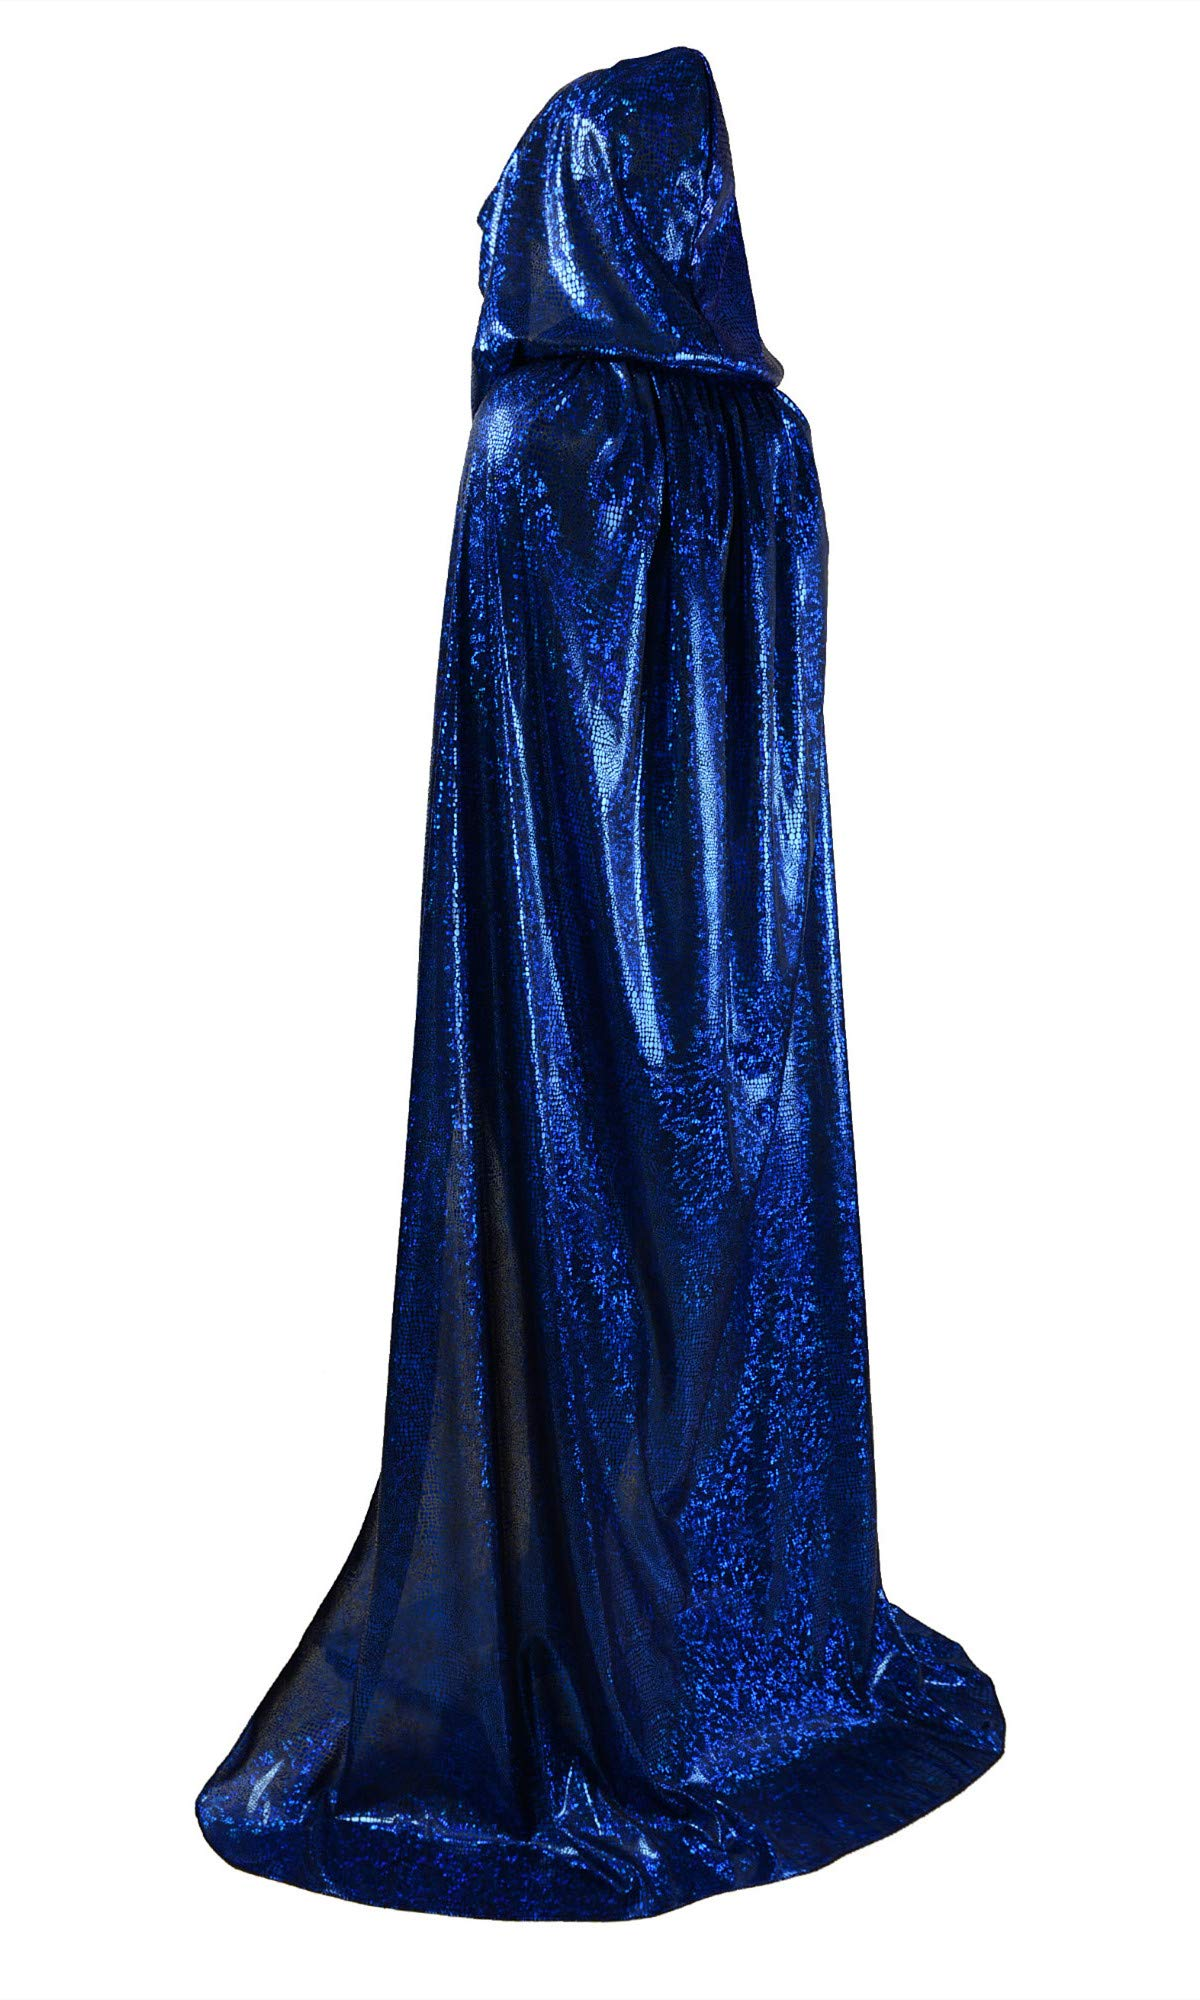 OurLore Unisex Full Length Hooded Cape Halloween